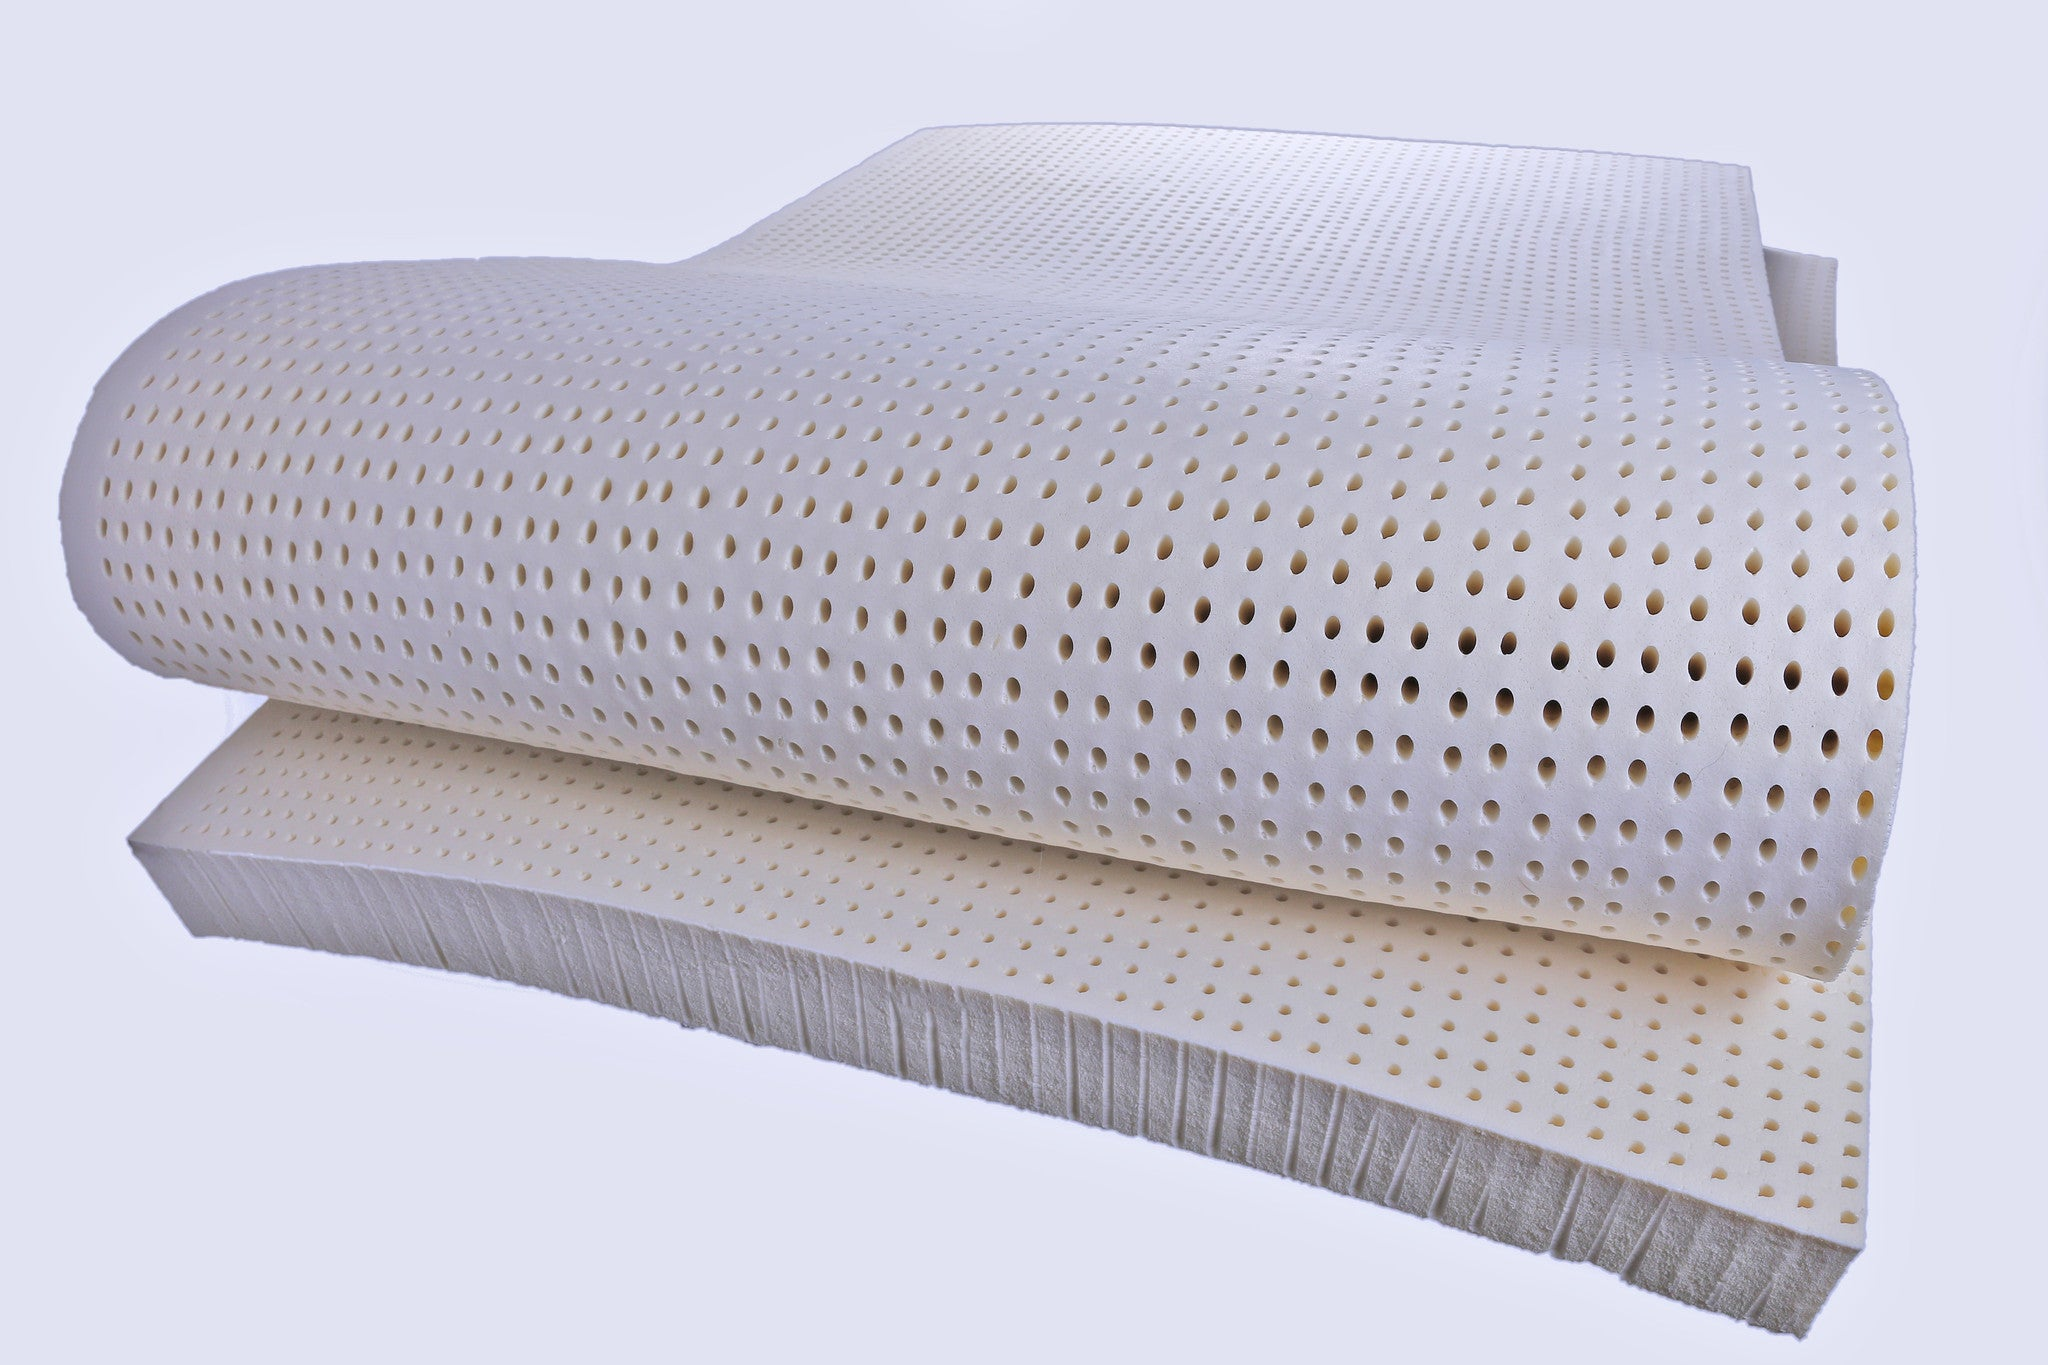 gel beautiful of elegant top form pad design fresh is dream pillow foam mattress fortable this posed topper